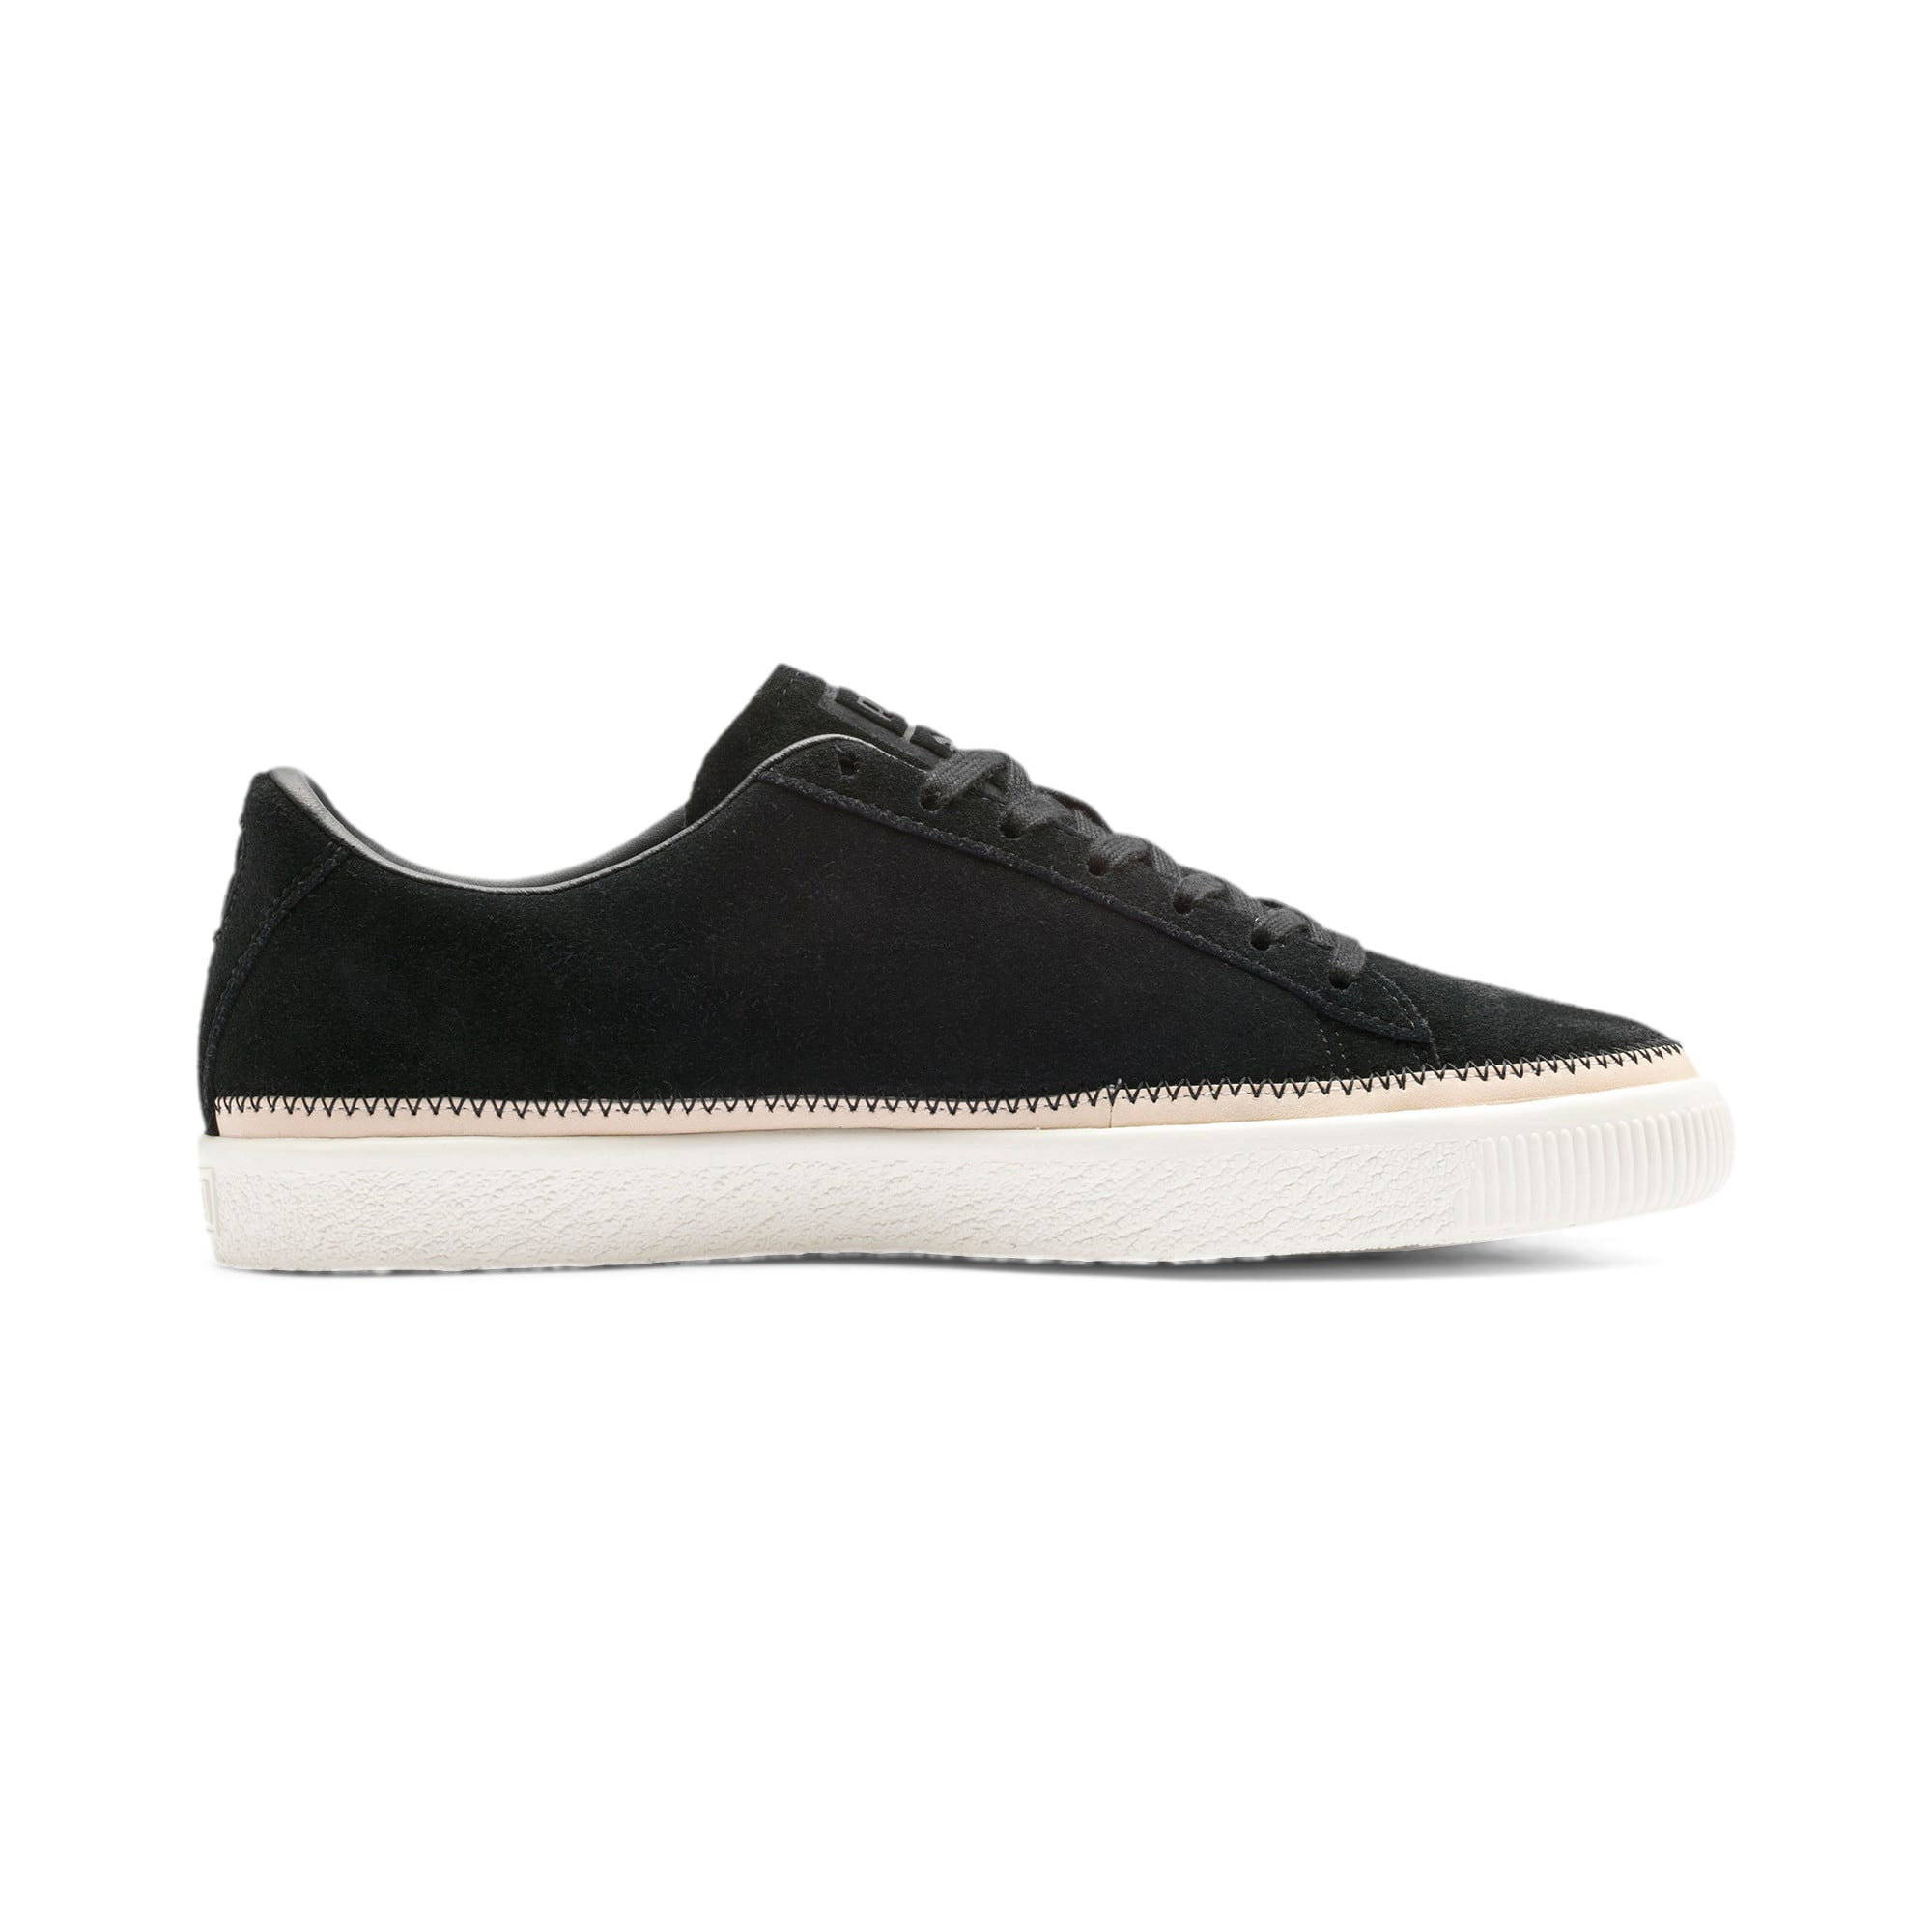 Suede Trim PRM Sneakers, Puma Black-Whisper White, large